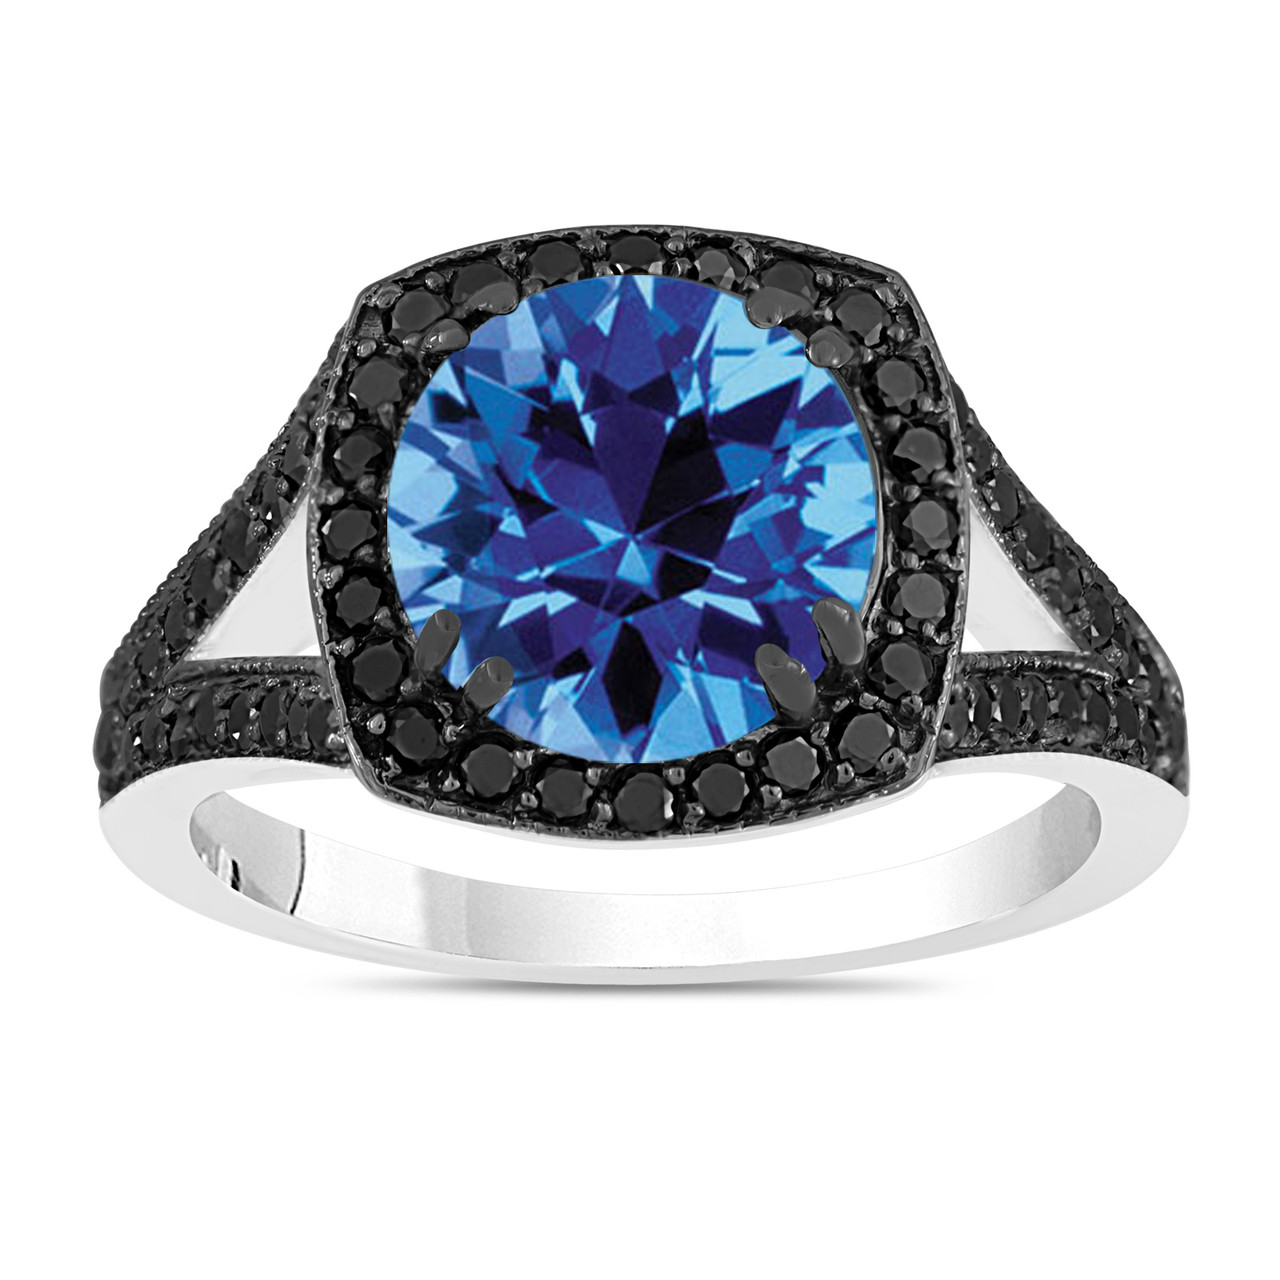 3.04 Carat Blue Topaz Engagement Ring, Wedding Ring With Black Diamonds 14K  White Gold Unique Halo Pave Handmade Certified